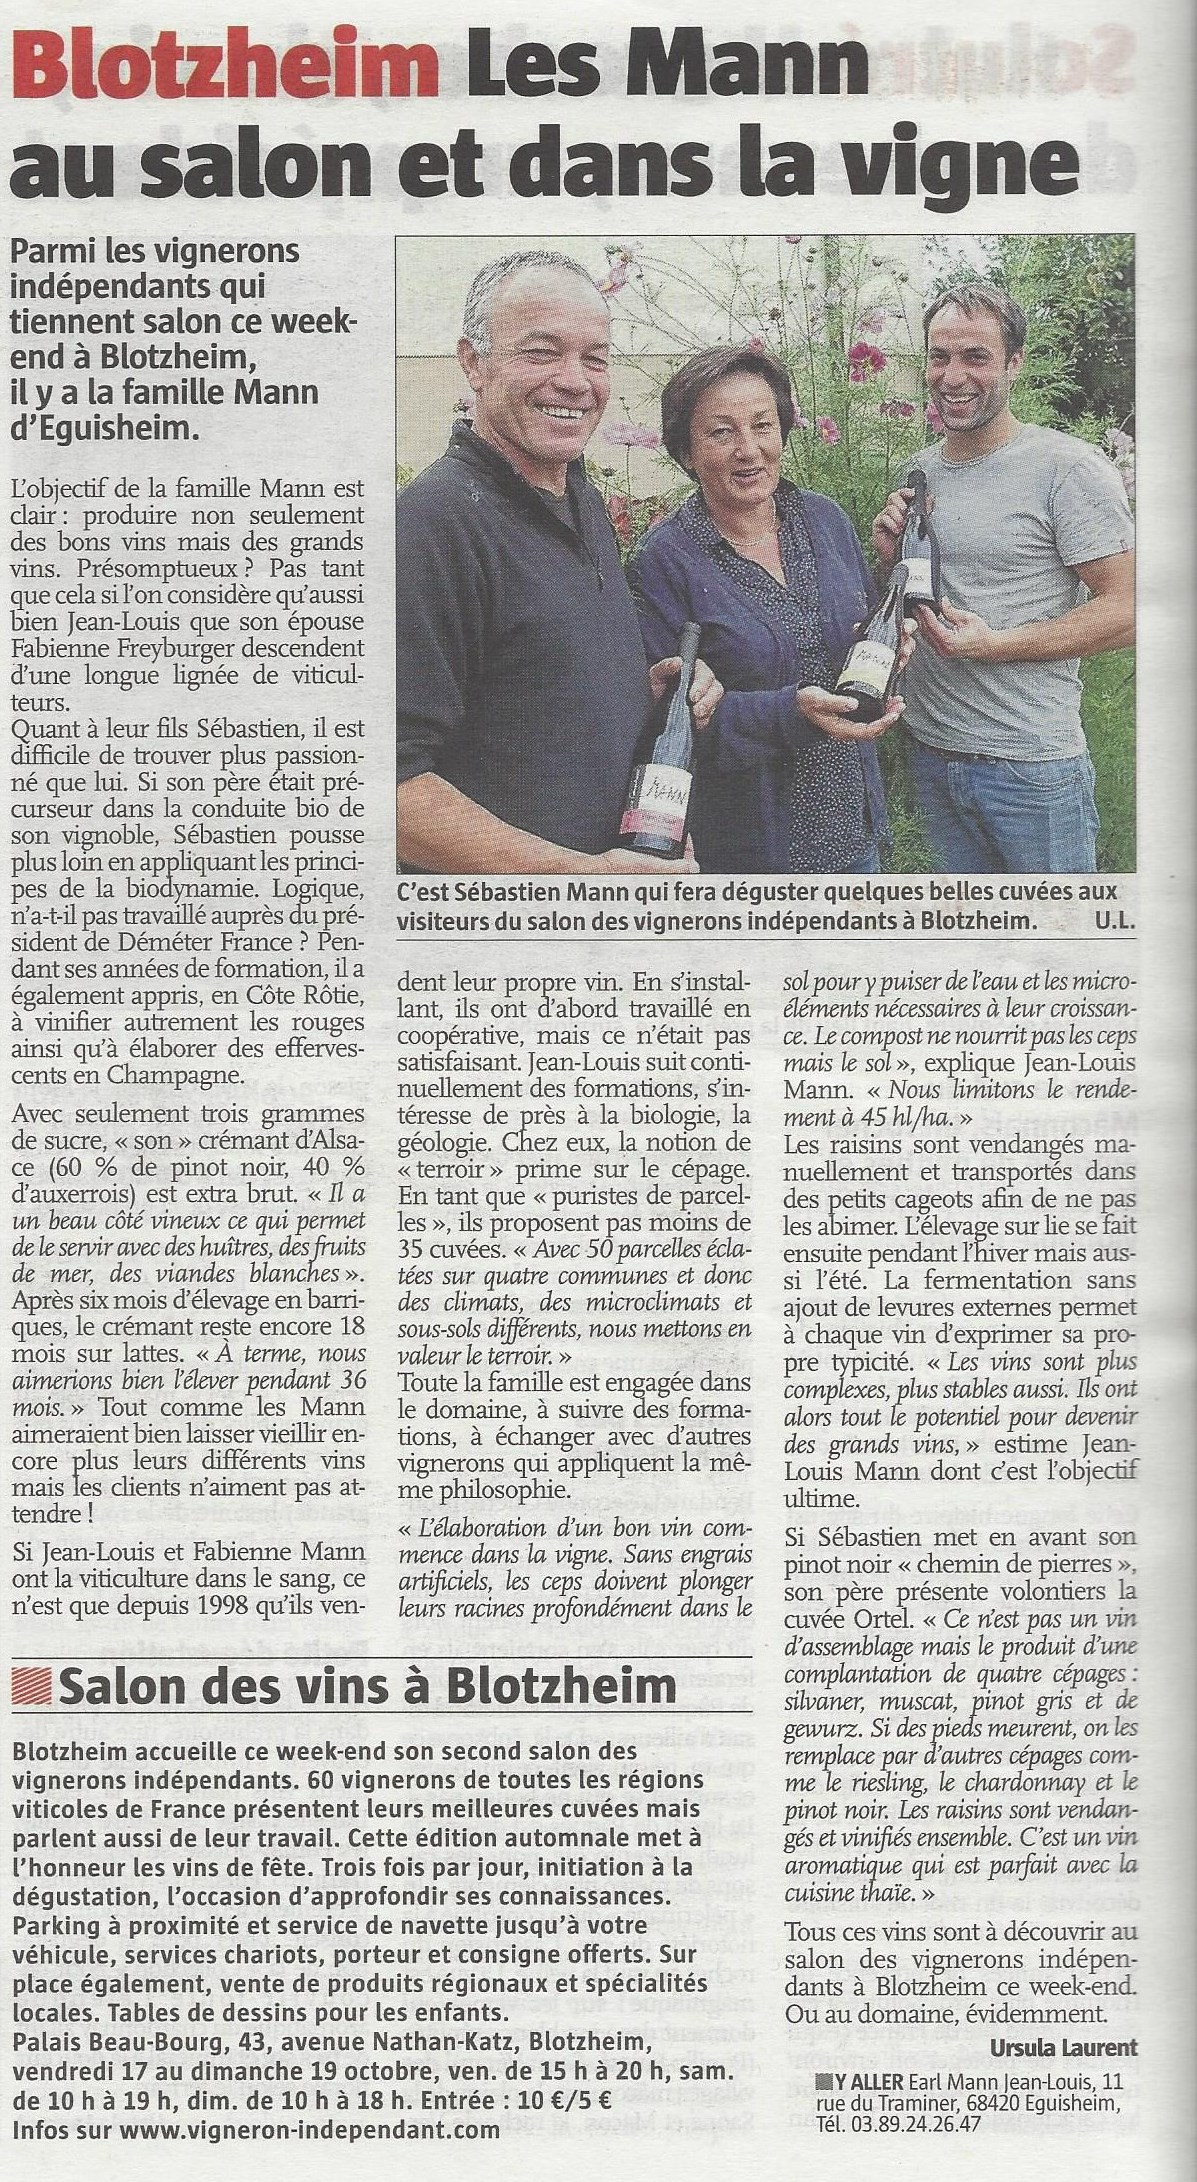 article ALSACE 17-10-2014 retouche